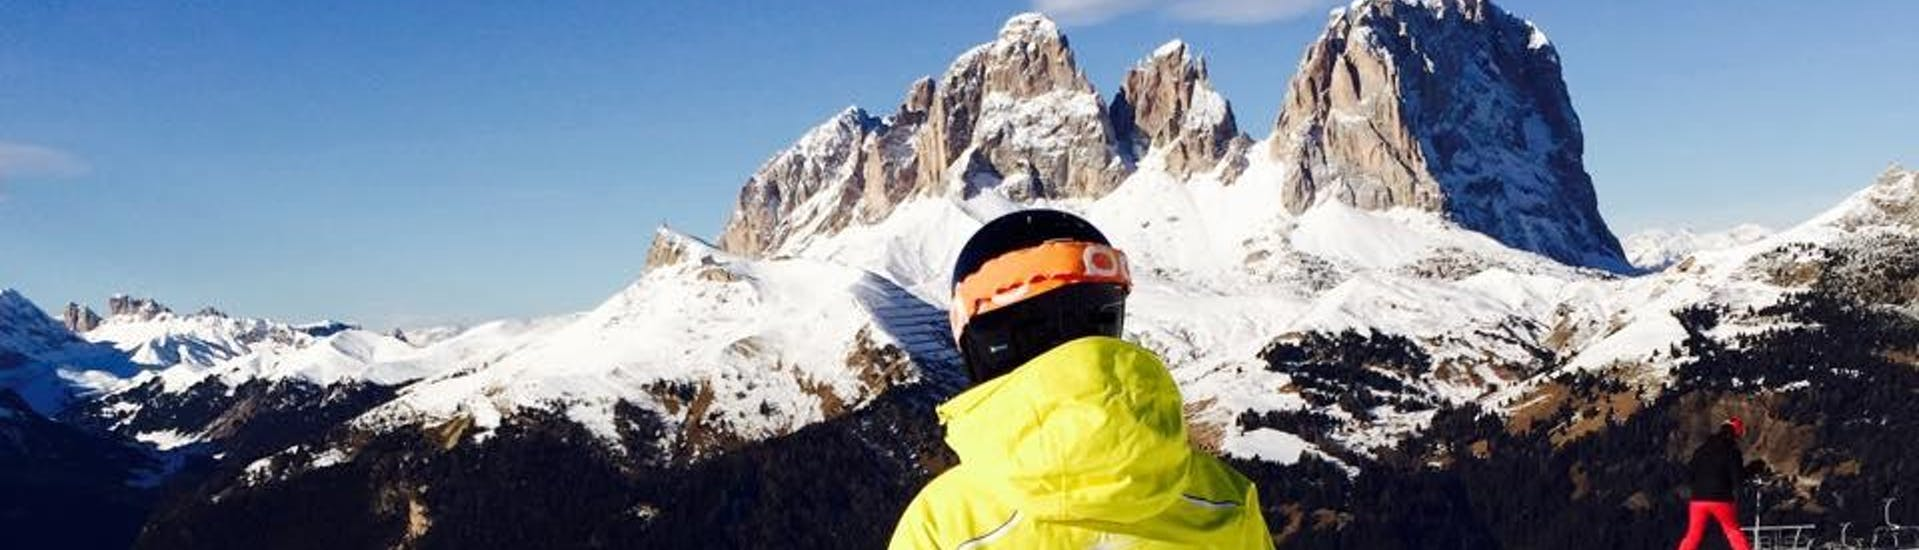 """Ski Lessons """"Young Club"""" (13-18 y.) for Advanced Skiers with Scuola Sci 2000 Selva - Hero image"""